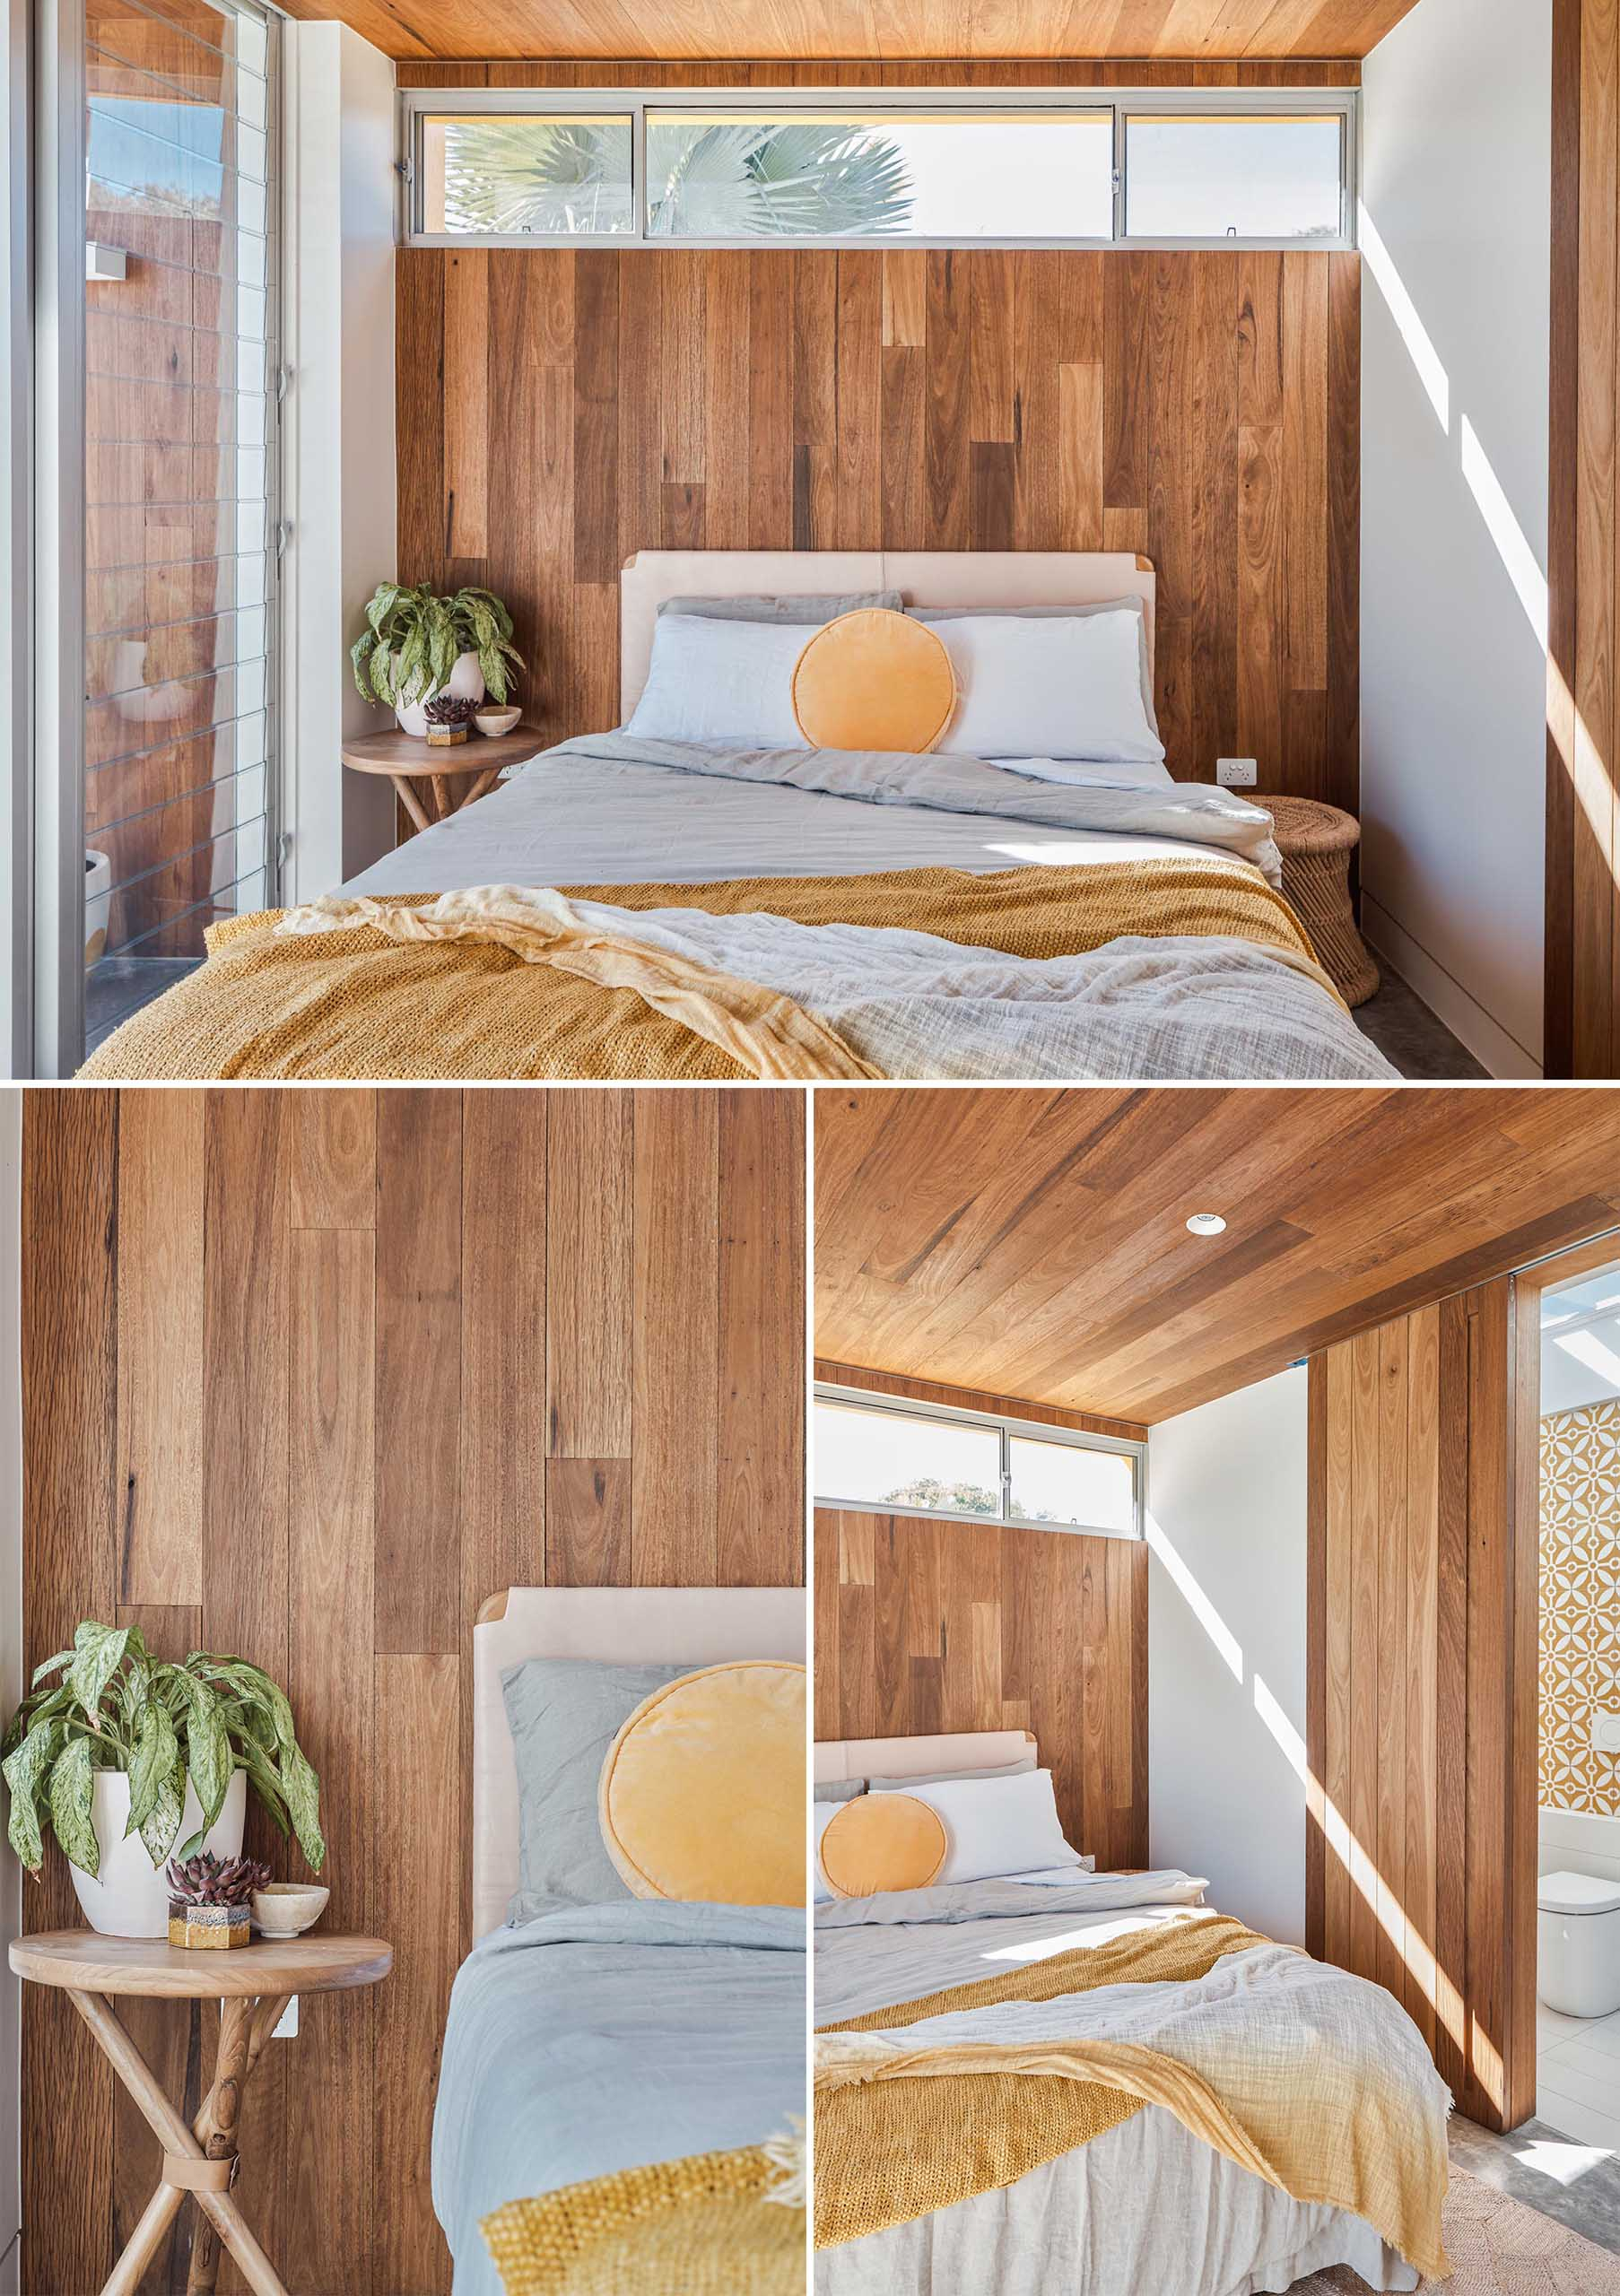 The wood ceiling continues through for a seamless look, and in the bedroom it flows down the wall to act as a backdrop for the bed.